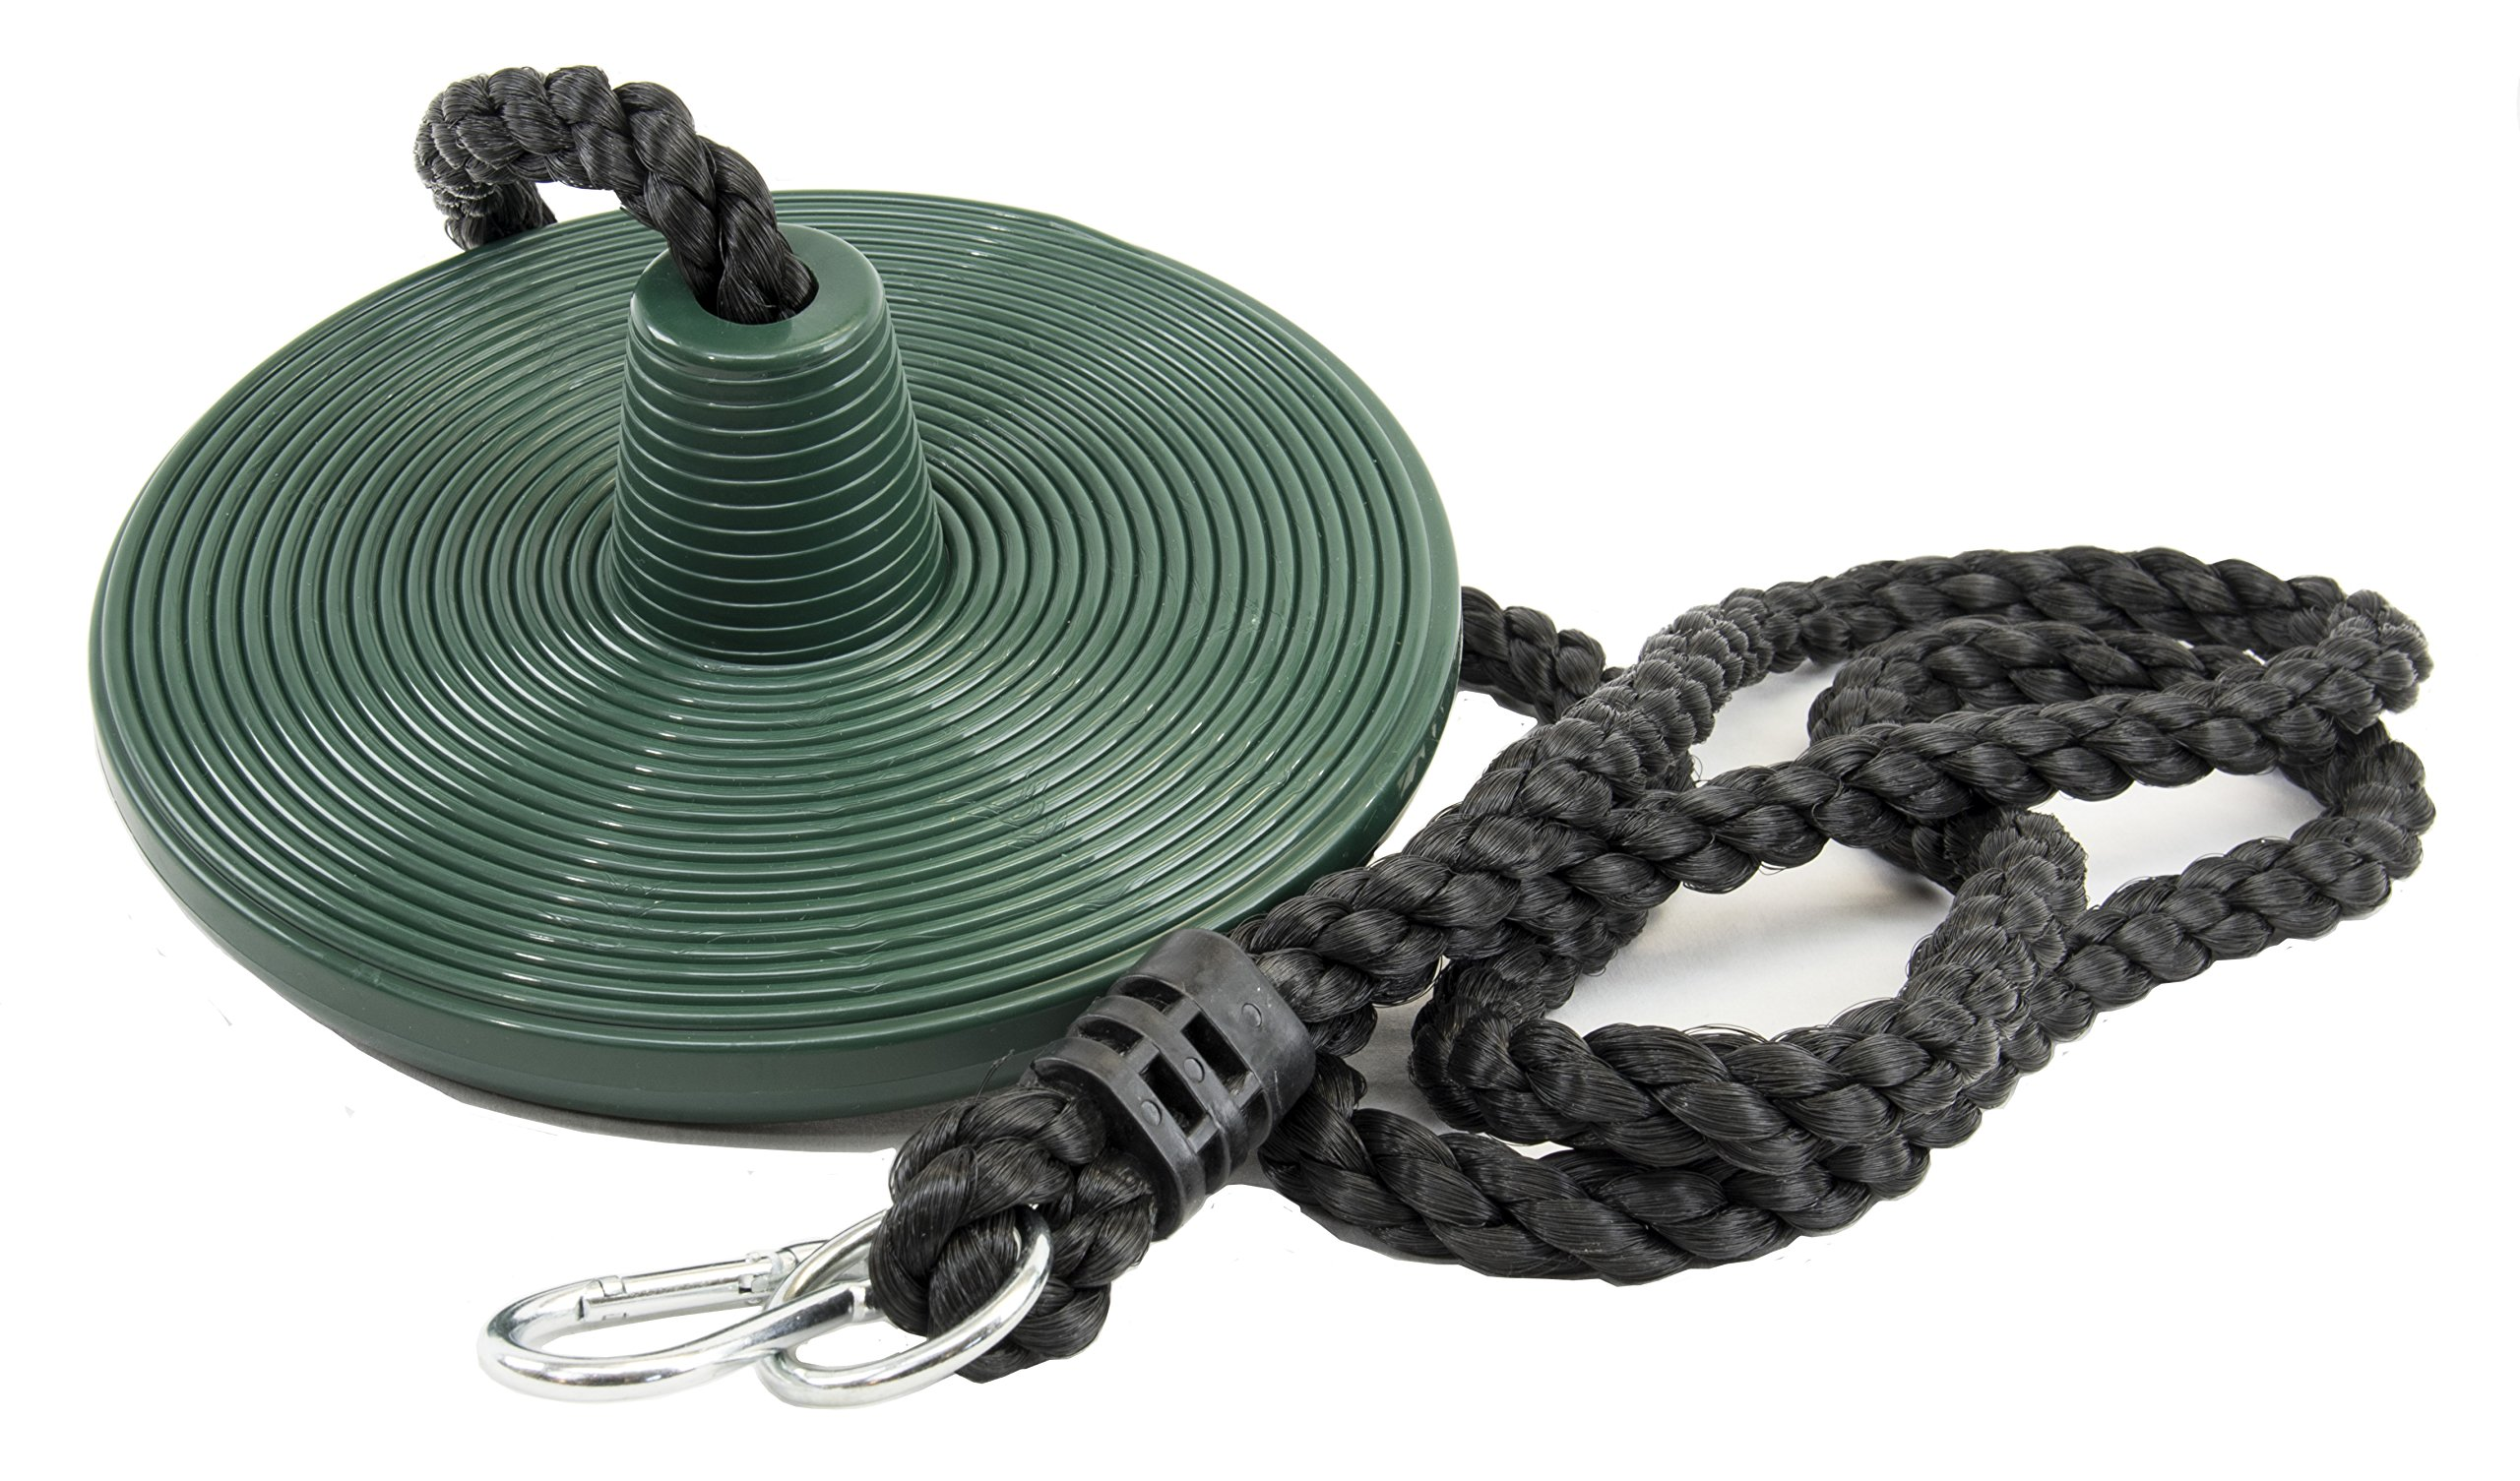 Squirrel Products Heavy Duty Plastic Tree Swing - Disc Rope Swing with Leg Protectors - Additions & Replacements - Outdoor Play Equipment - Green by Squirrel Products